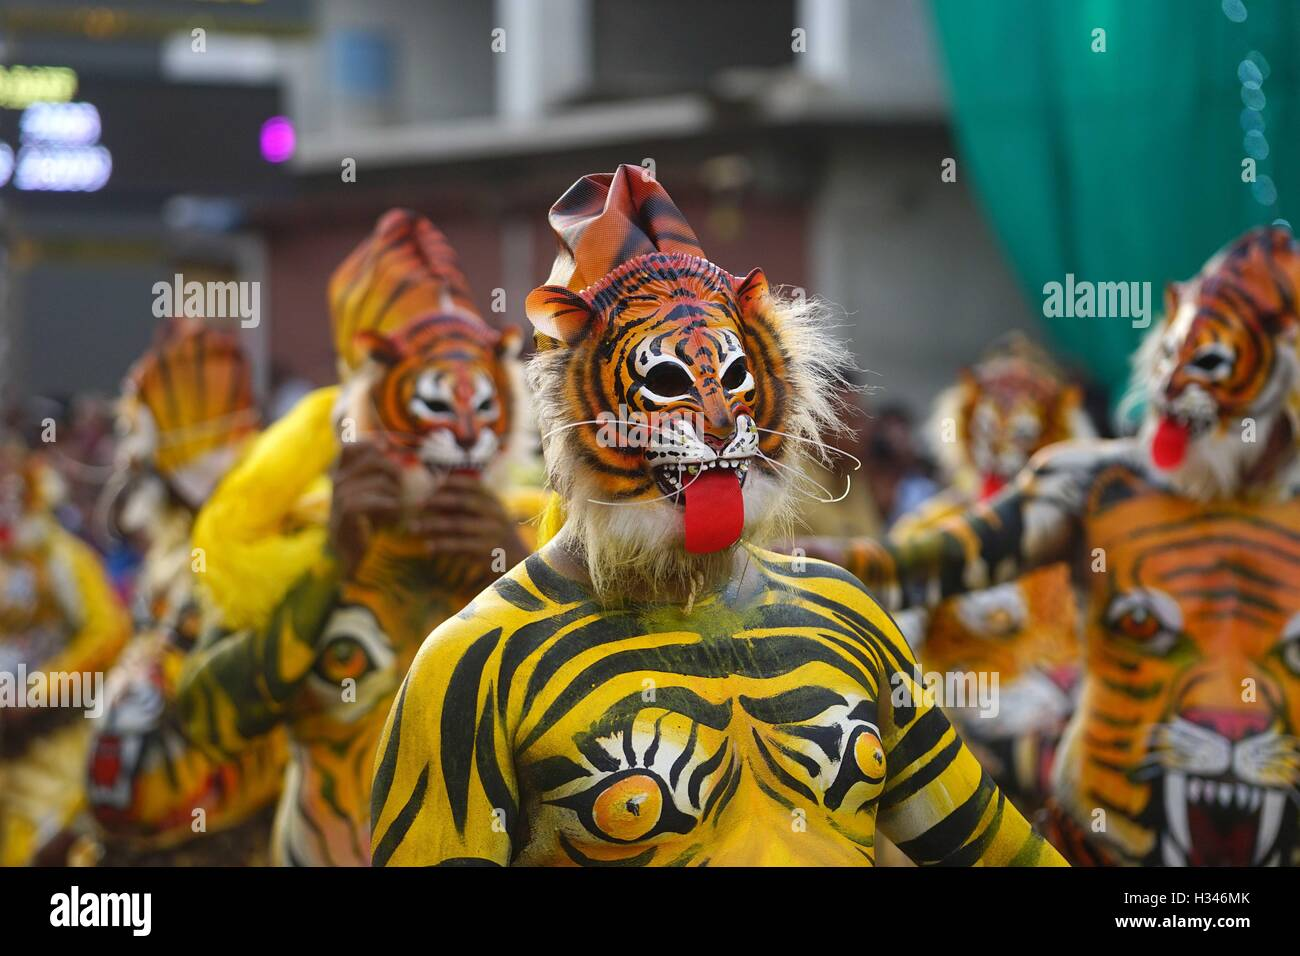 Trained dancers with their carefully painted bodies guise of tigers perform the famous Pulikali streets of Thrissur - Stock Image